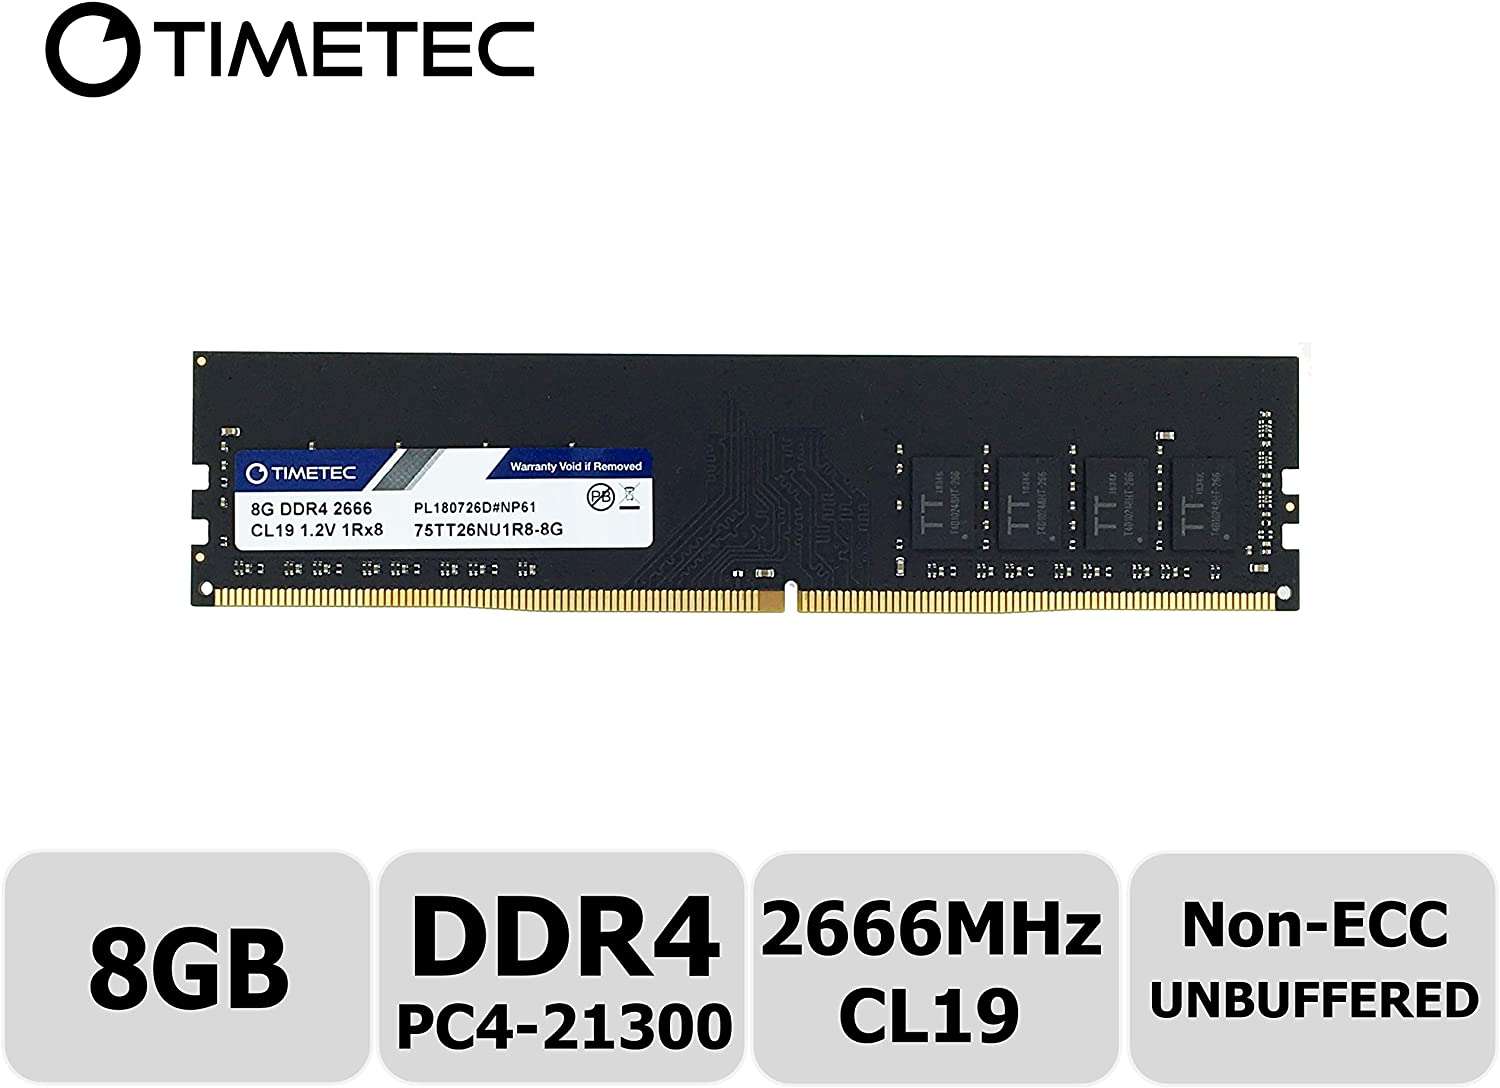 Timetec Hynix IC 8GB DDR4 2666MHz PC4-21300 Unbuffered Non-ECC 1.2V CL19 1Rx8 Single Rank 288 Pin UDIMM Desktop Memory RAM Module Upgrade (8GB)